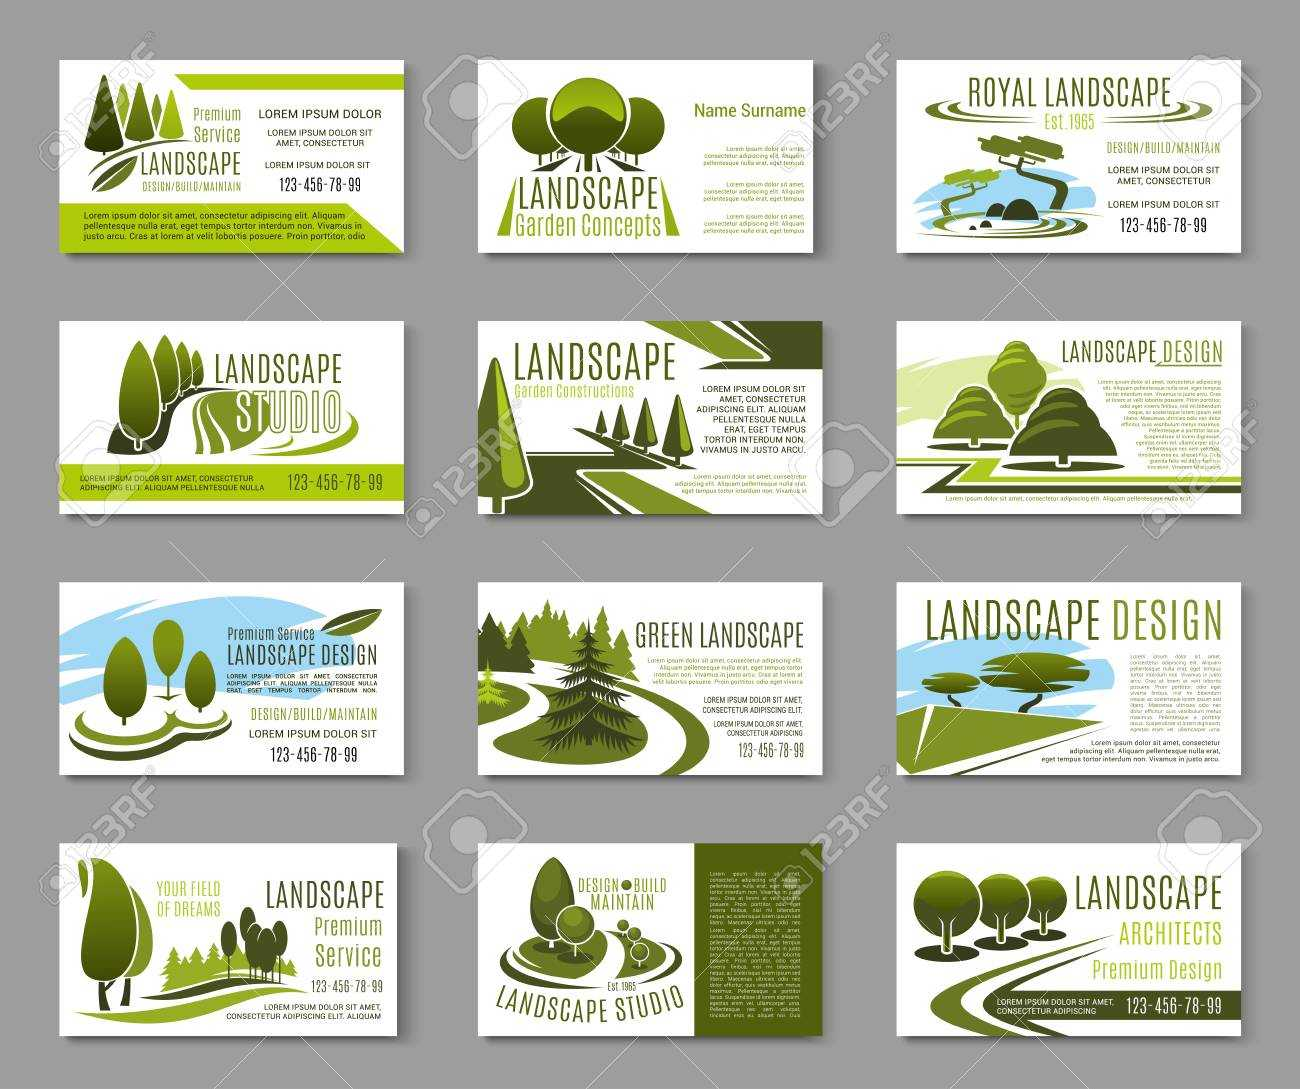 Landscape Design Studio Business Card Template With Landscaping Business Card Template